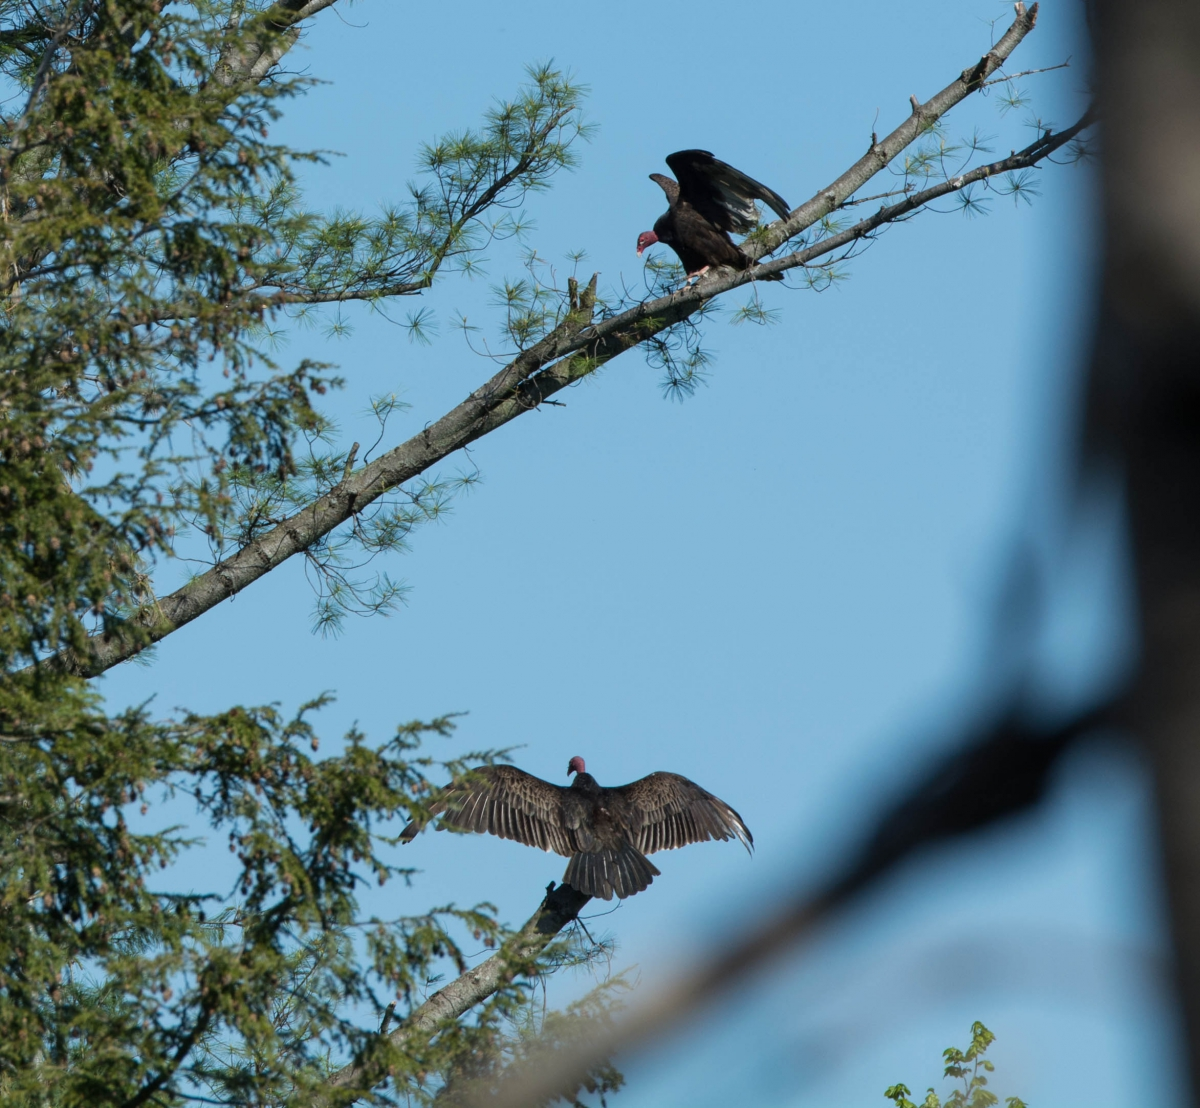 Two Turkey vultures spread their wings while perched near a tree top.